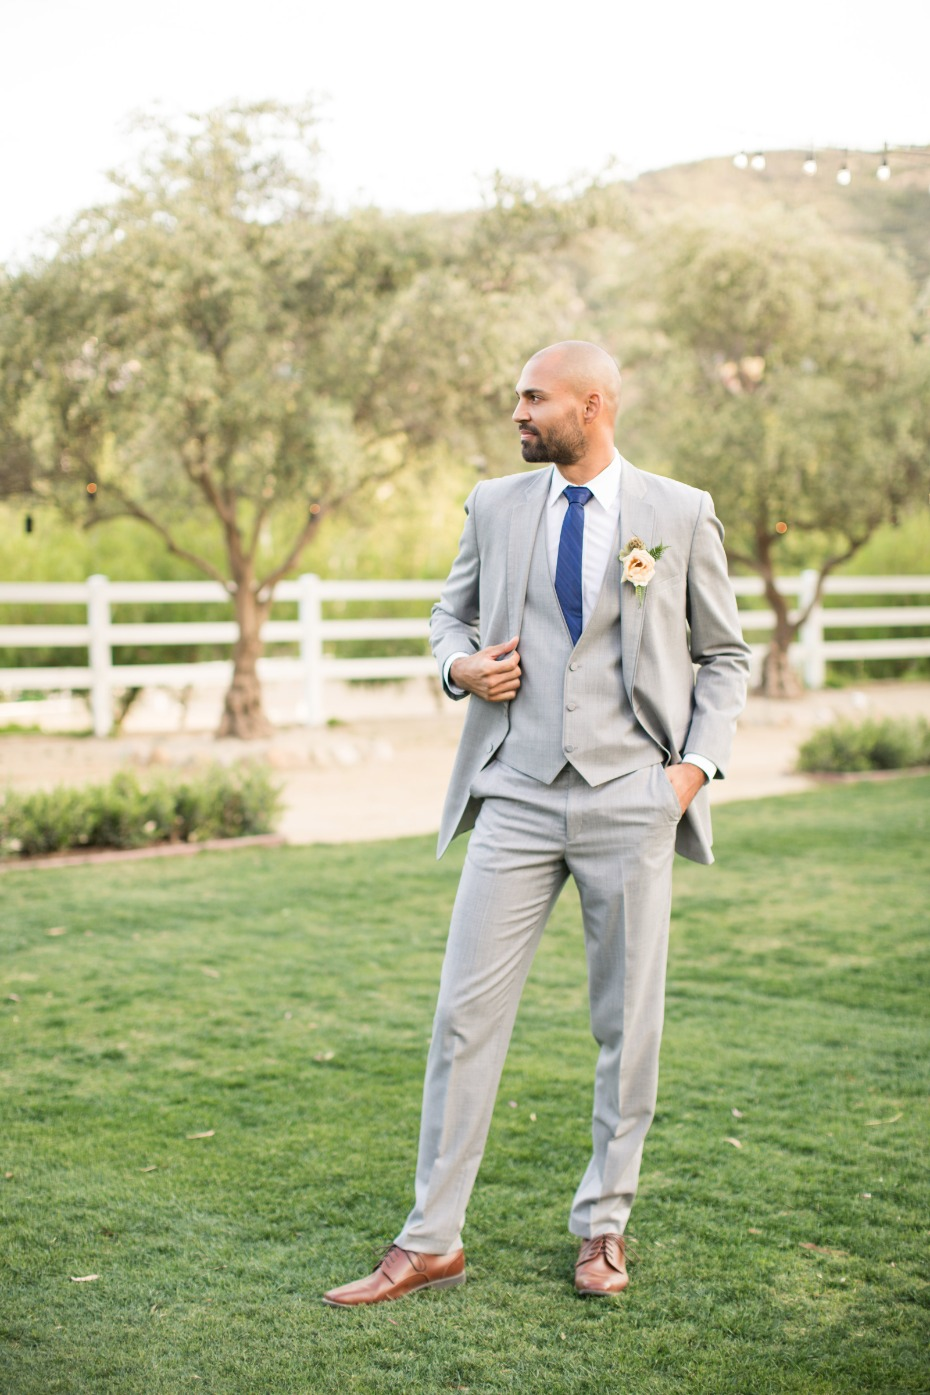 Friar Tux wedding suit in light grey